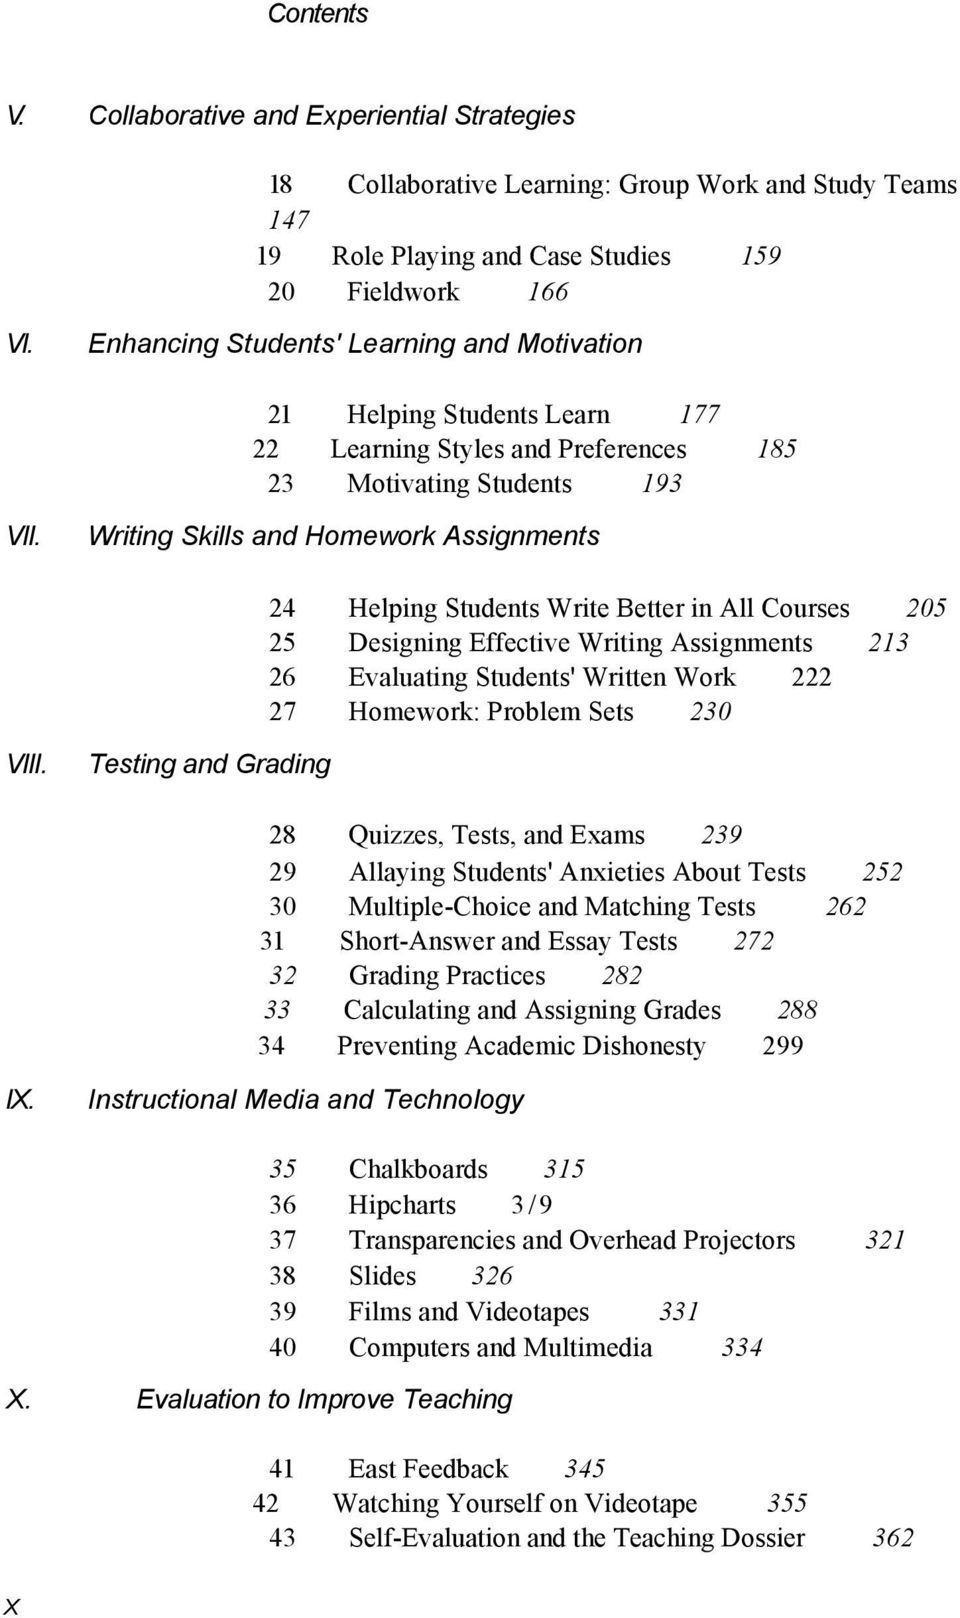 Writing Skills and Homework Assignments 24 Helping Students Write Better in All Courses 205 25 Designing Effective Writing Assignments 213 26 Evaluating Students' Written Work 222 27 Homework: